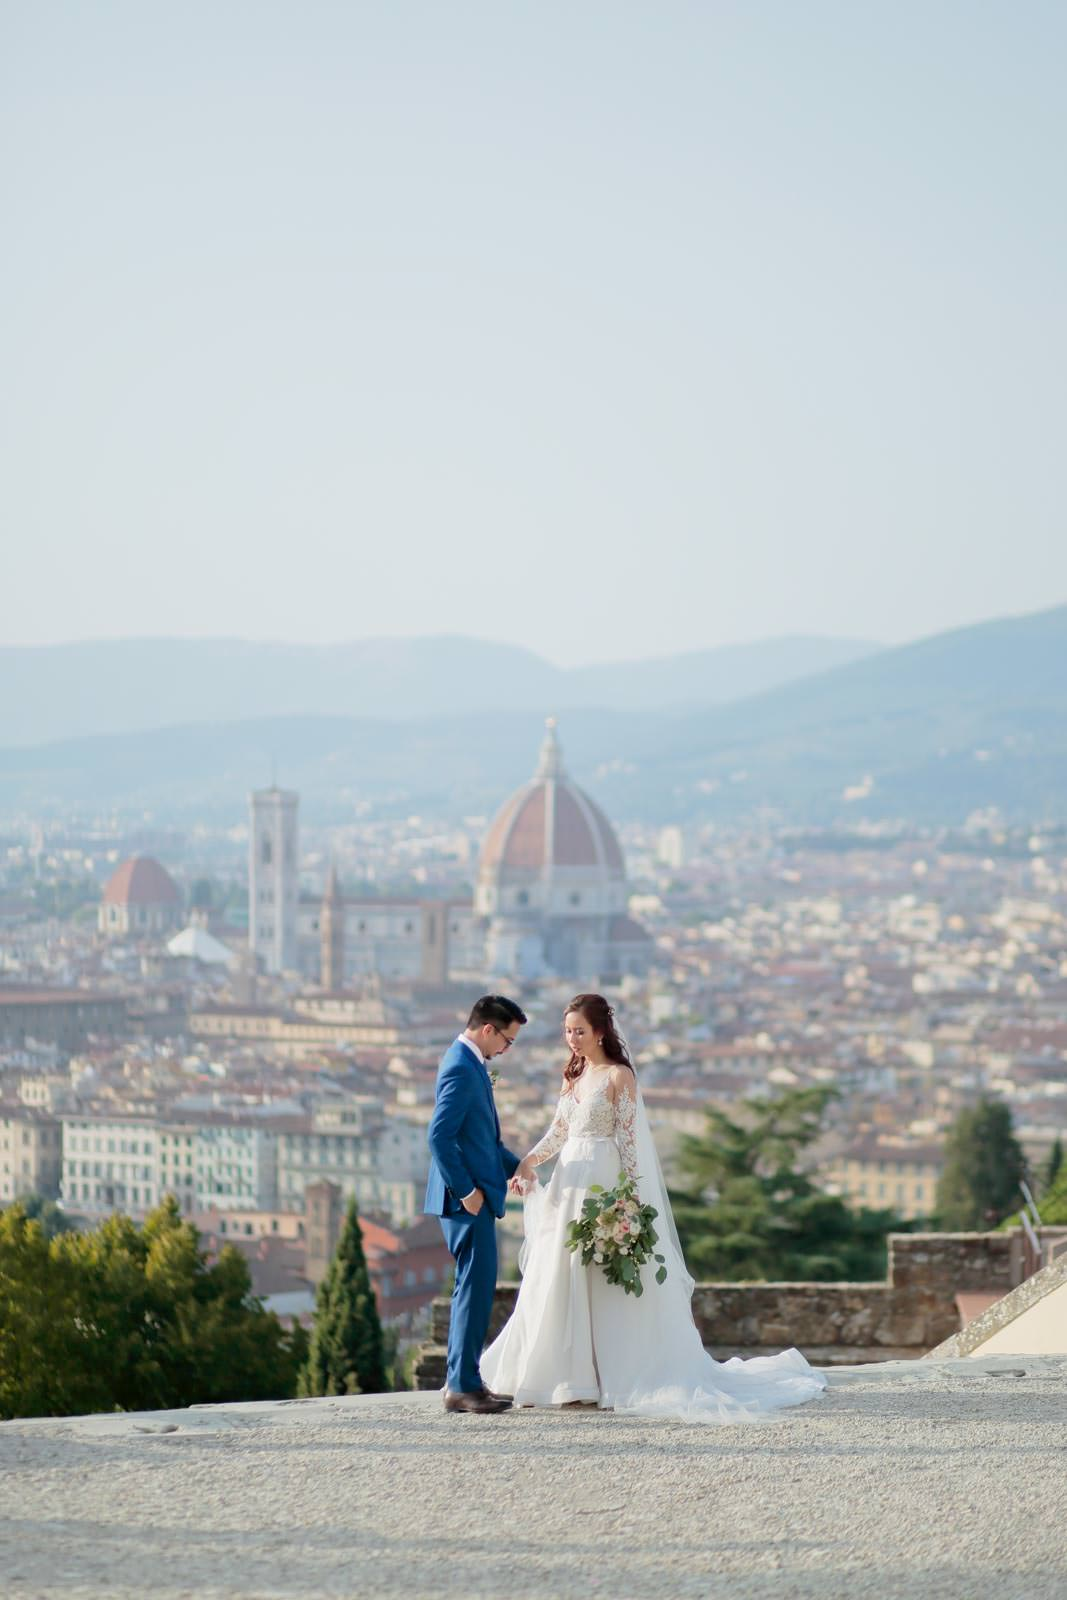 newlyweds strolling on a terrace with a view